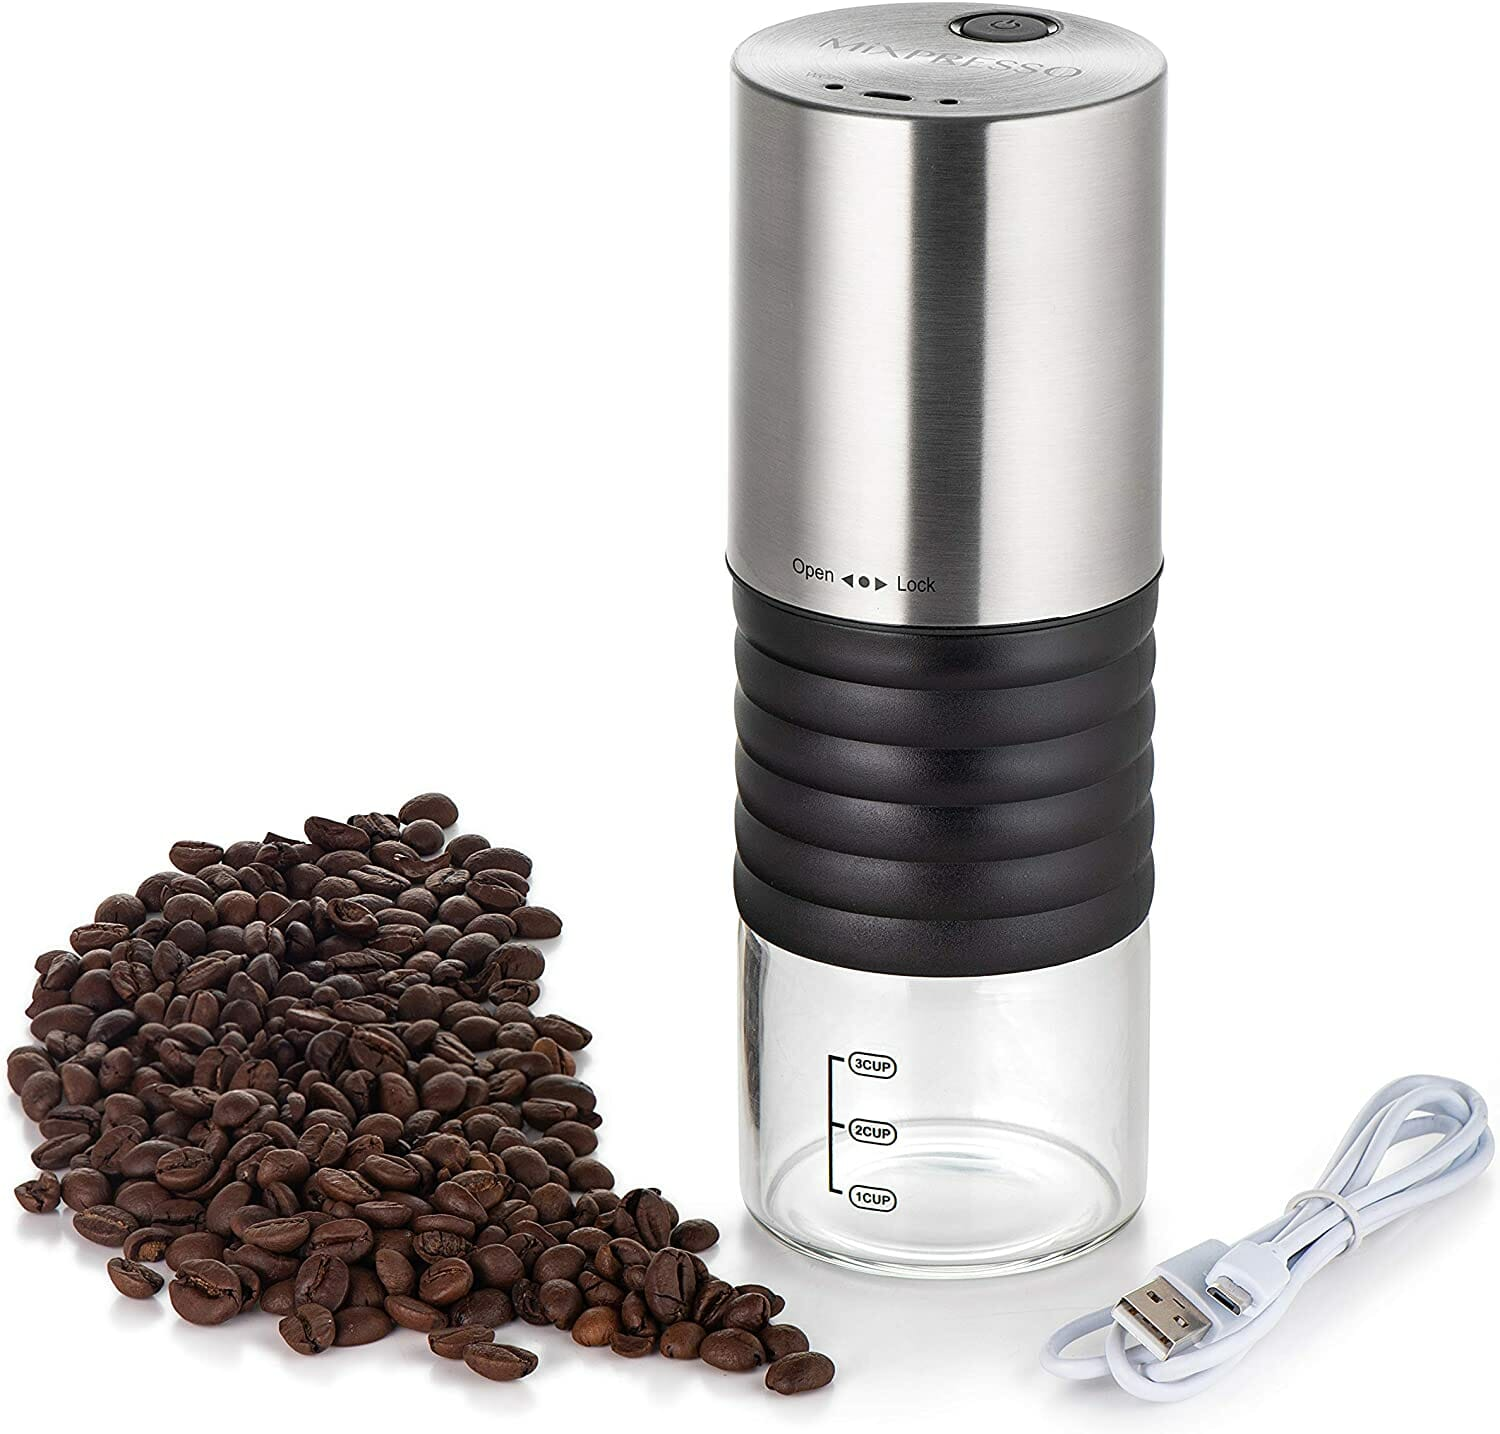 Mixpresso Battery Powered Coffee Grinder, USB Chargeable